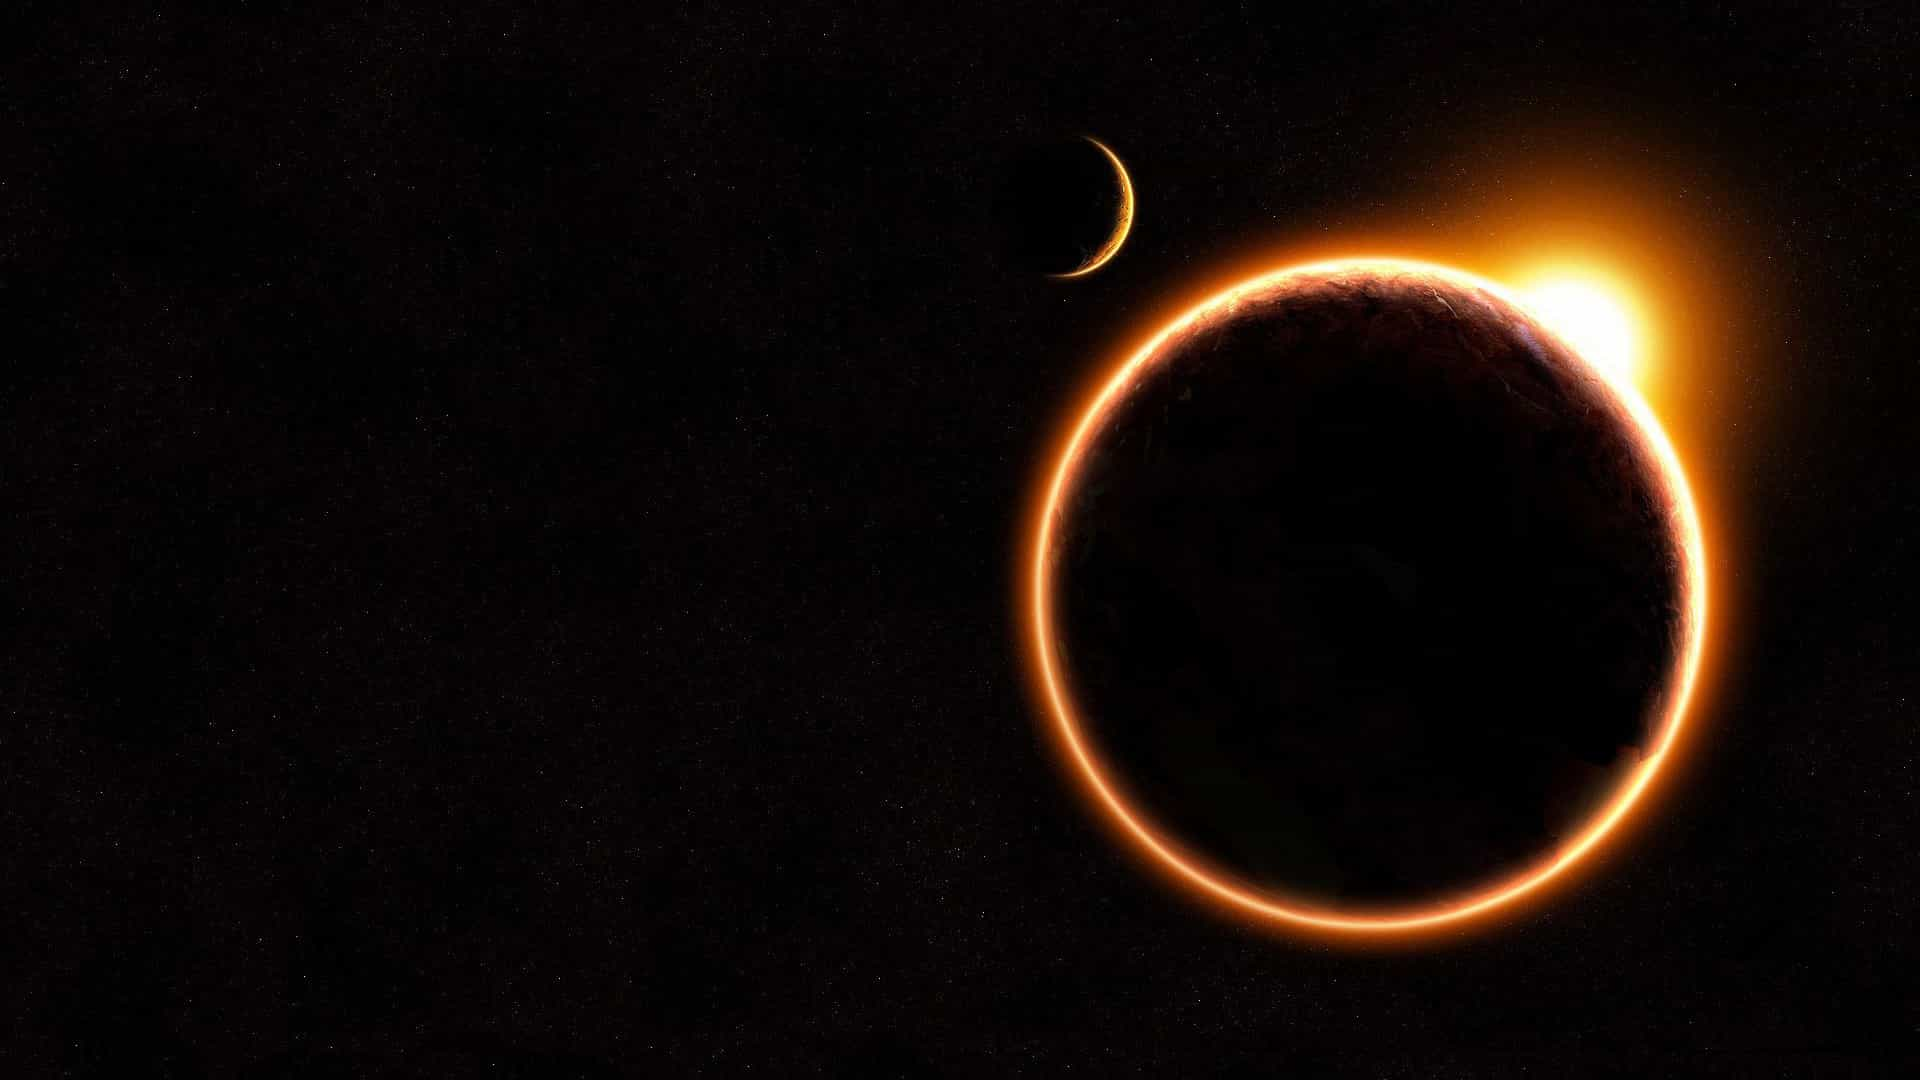 Lunar Eclipse HD Wallpapers - Top Free ...